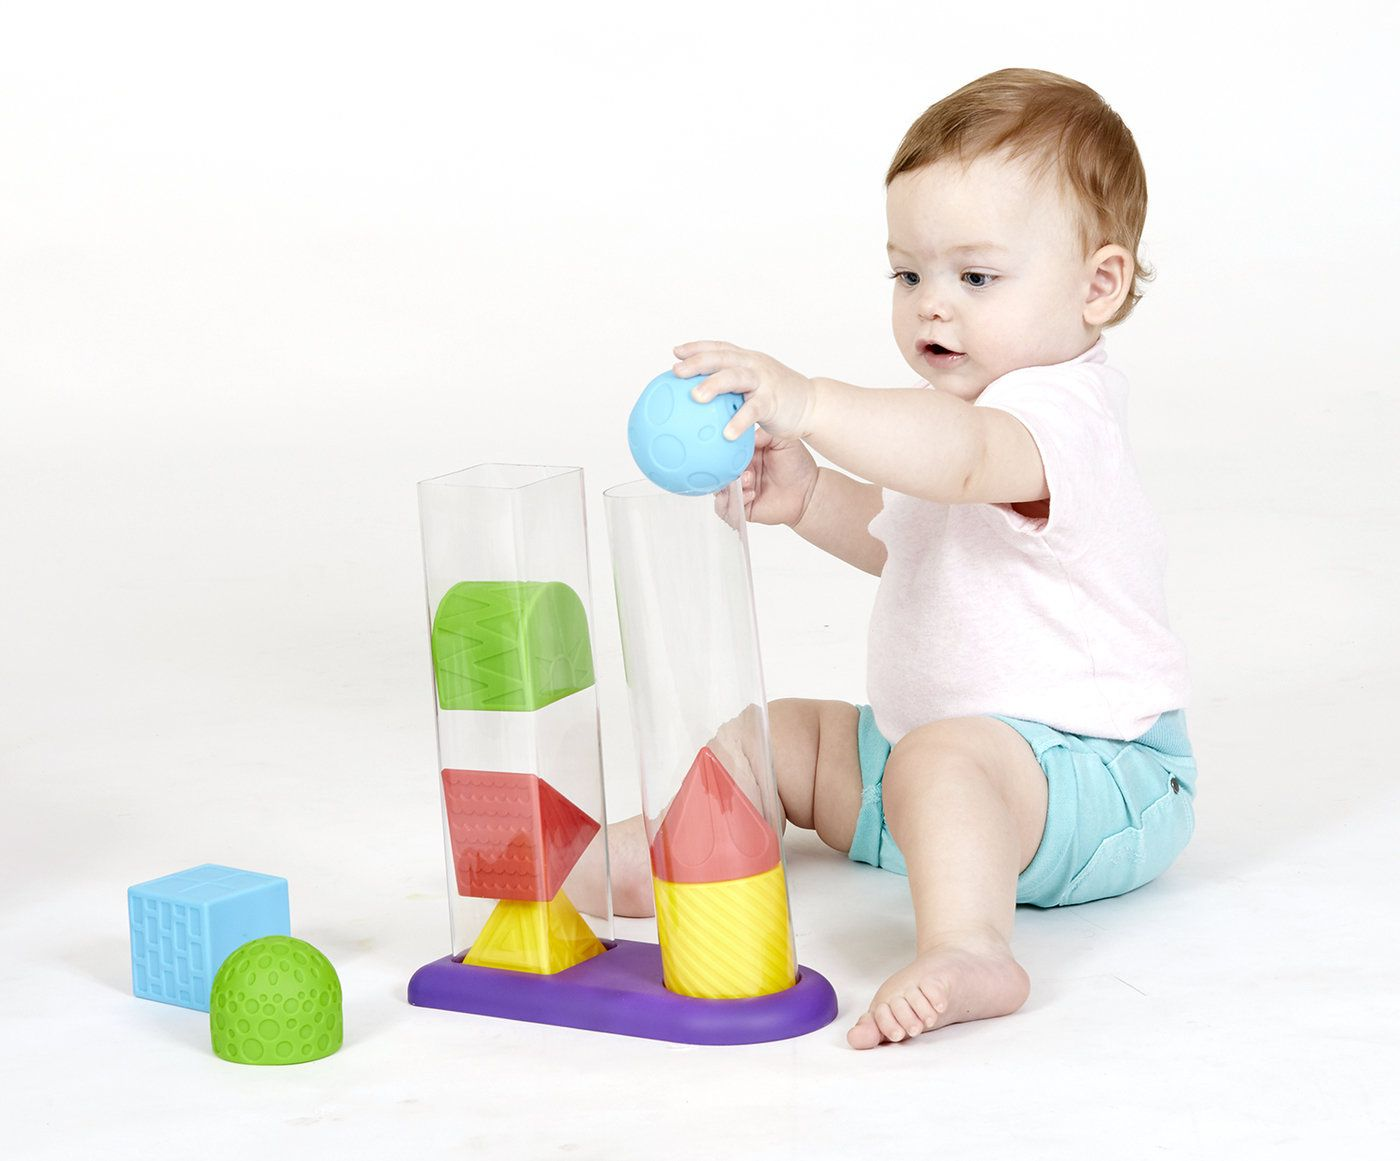 The Art of Christmas Shopping for… Other People's Kids. Child playing with Geostacker sensory toy.